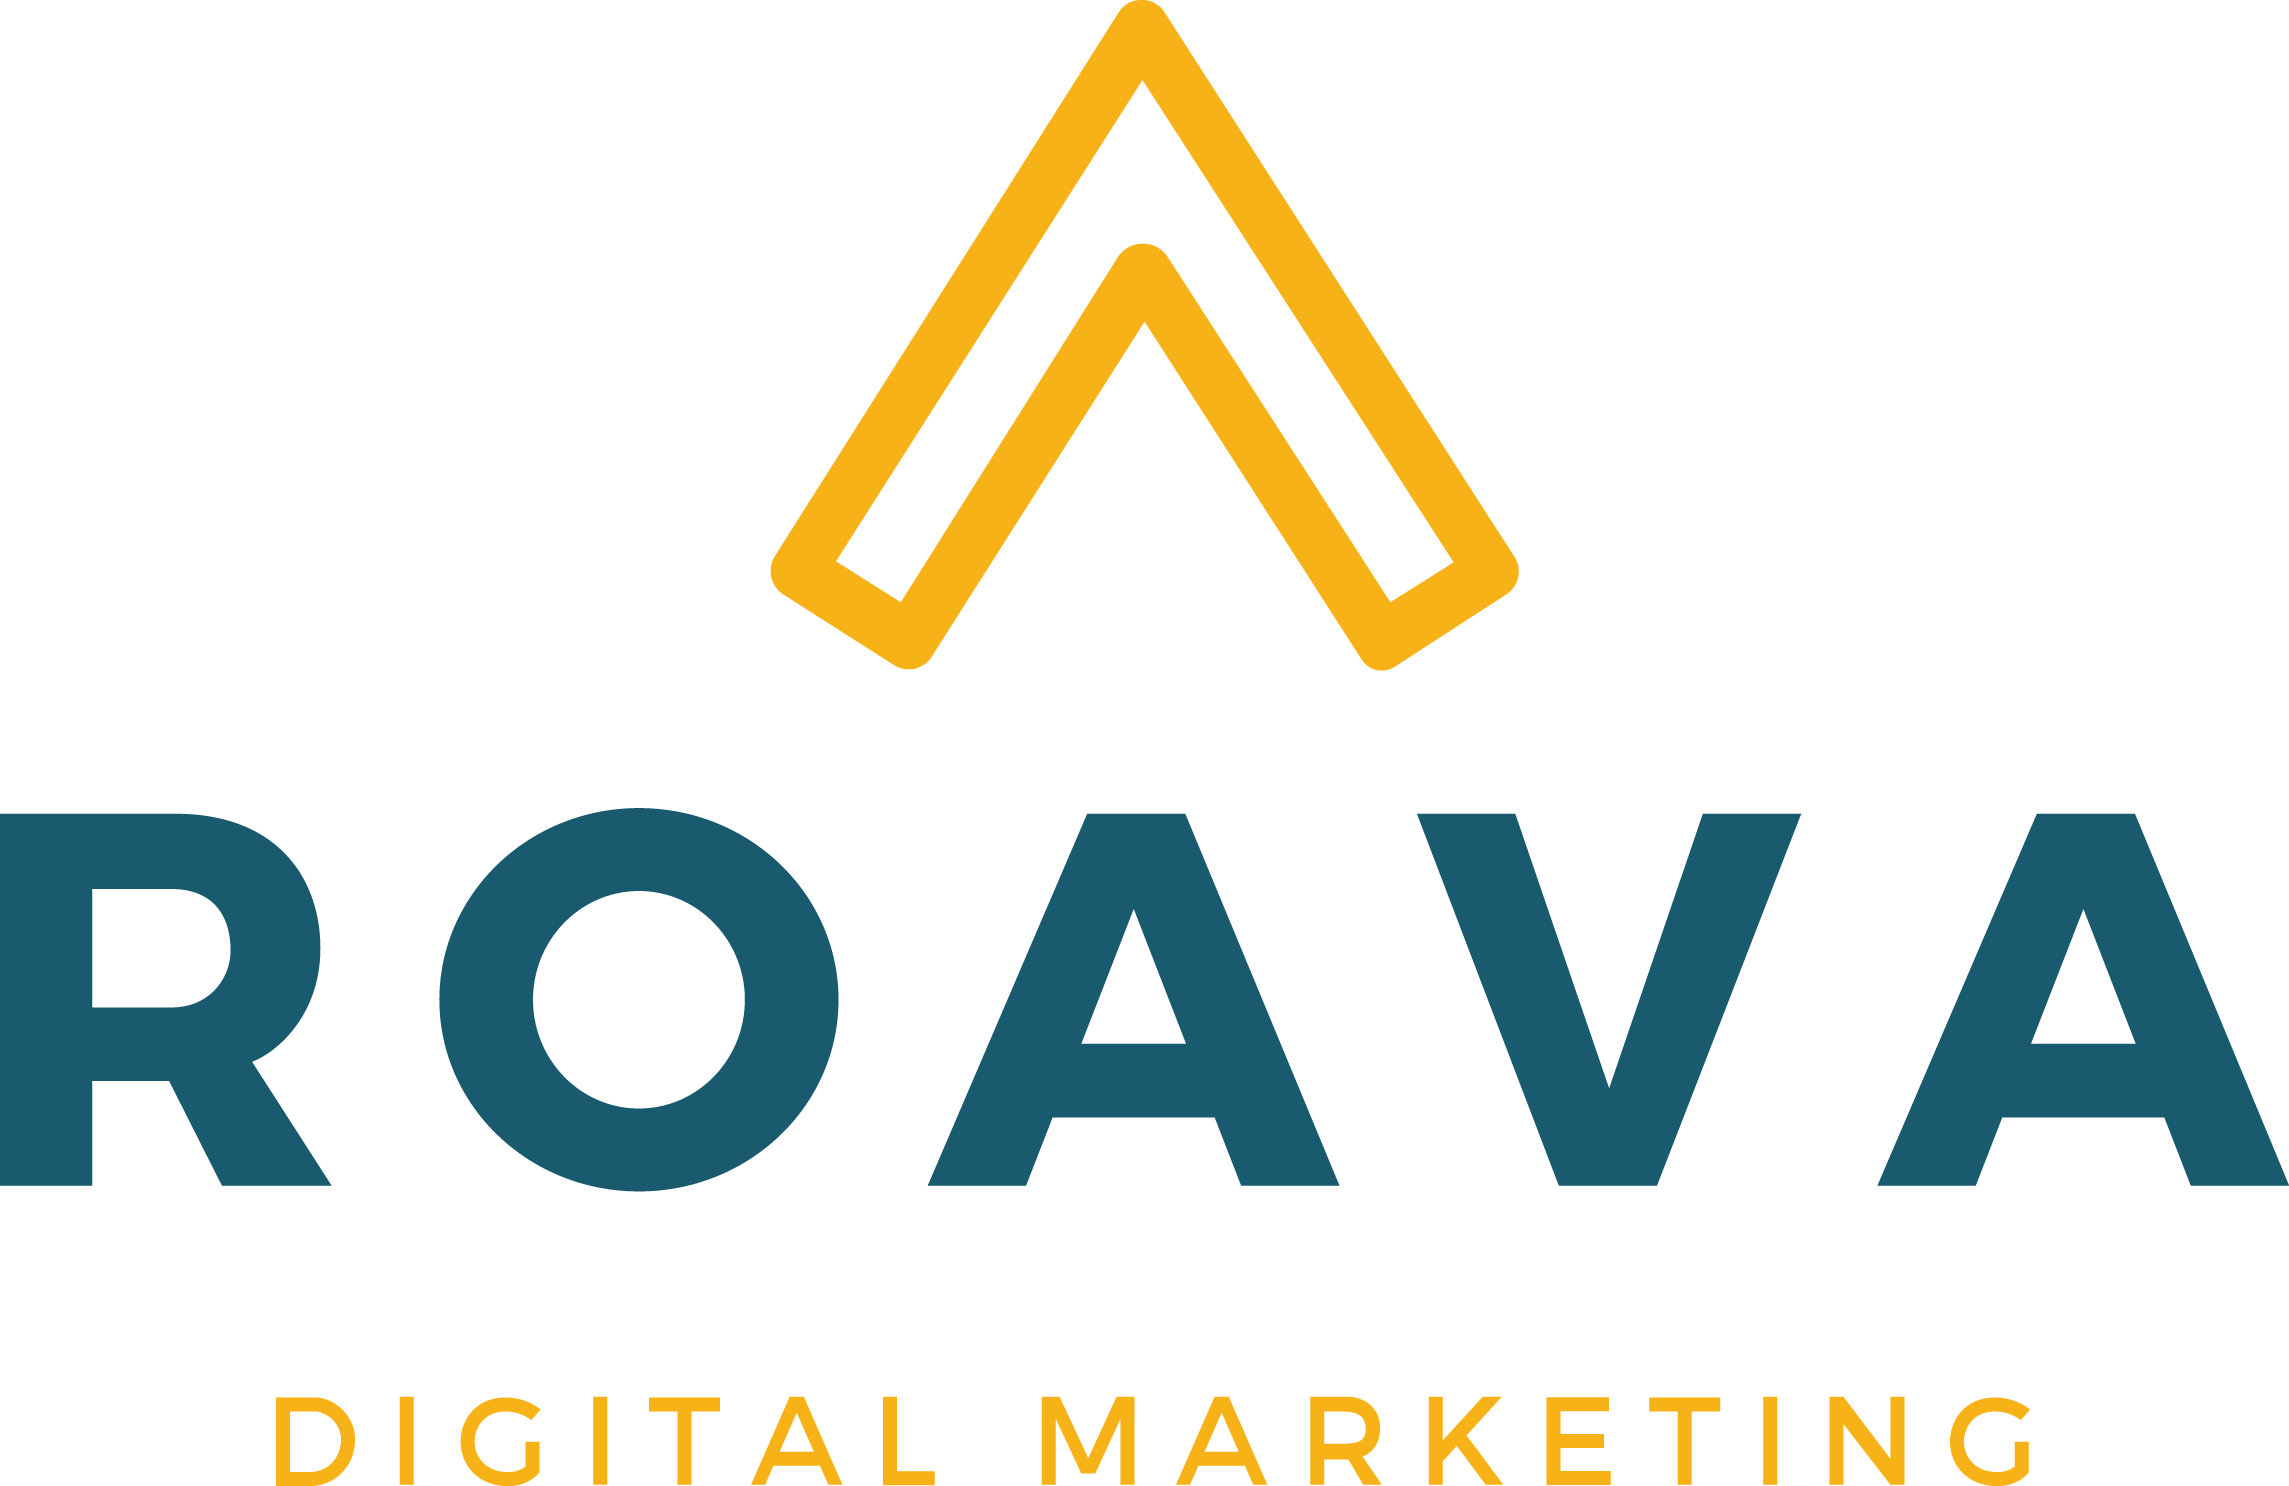 Roava Digital Marketing Corporation - Witness a Boost in Sales and Business